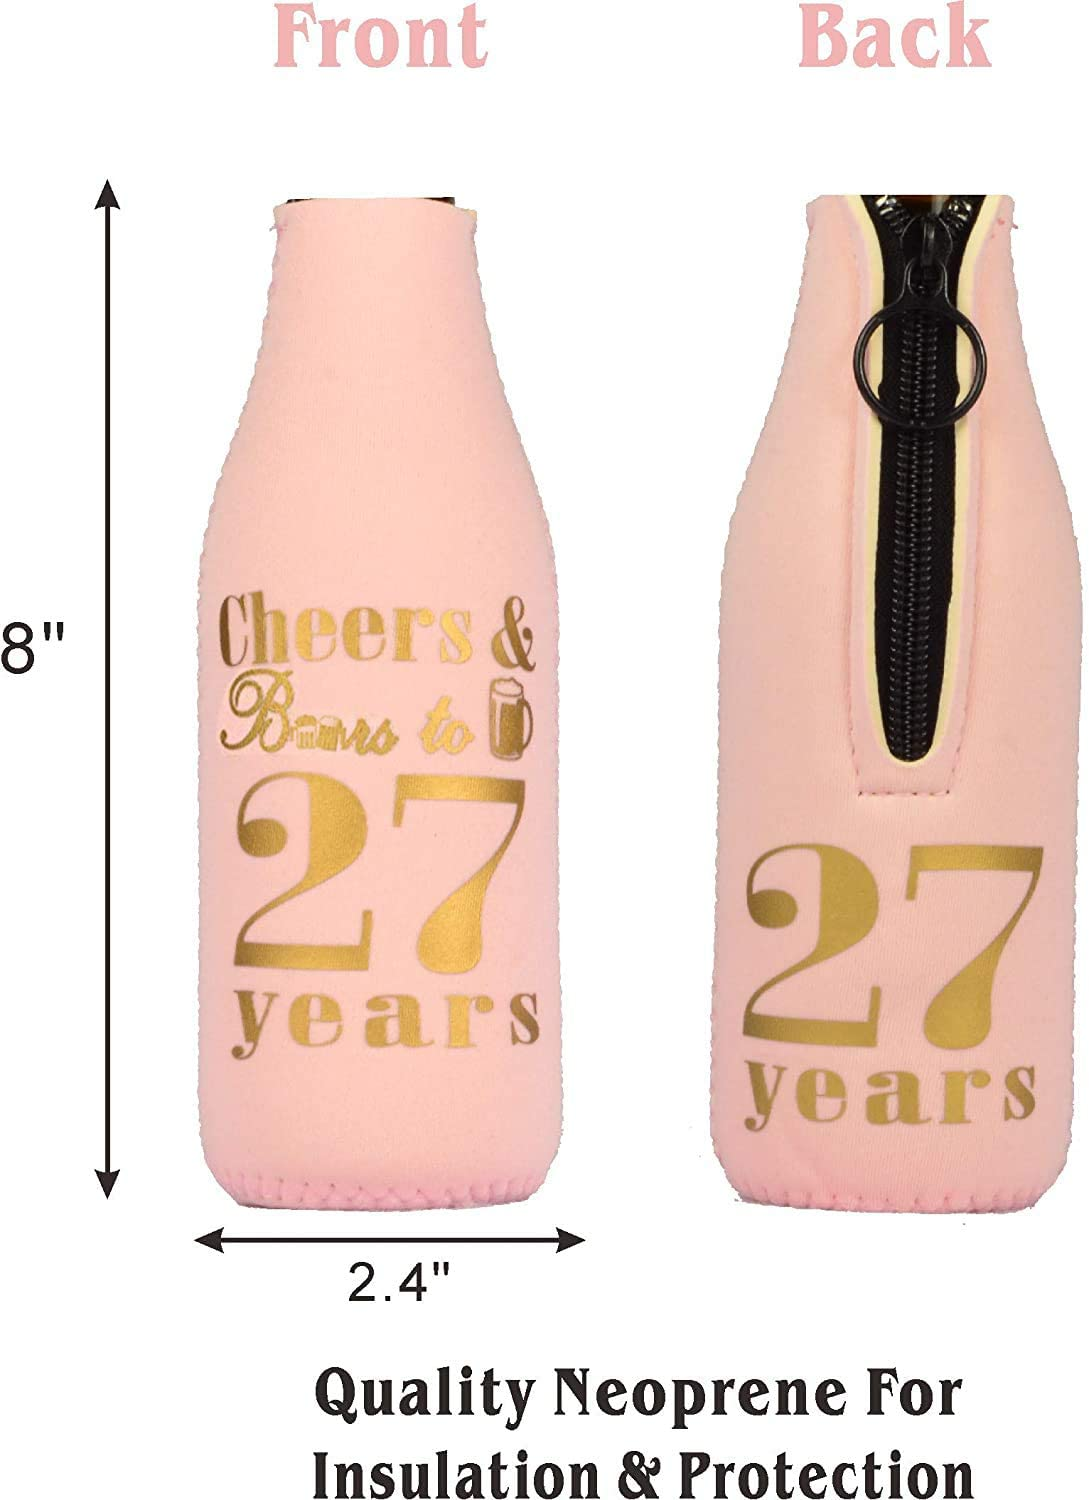 27th birthday Coozie 27th Birthday Party Supplies 27th Birthday Decorations for Women 27th Birthday Gifts for girl 27th Birthday Favors 27th Birthday Coozie Sleeve